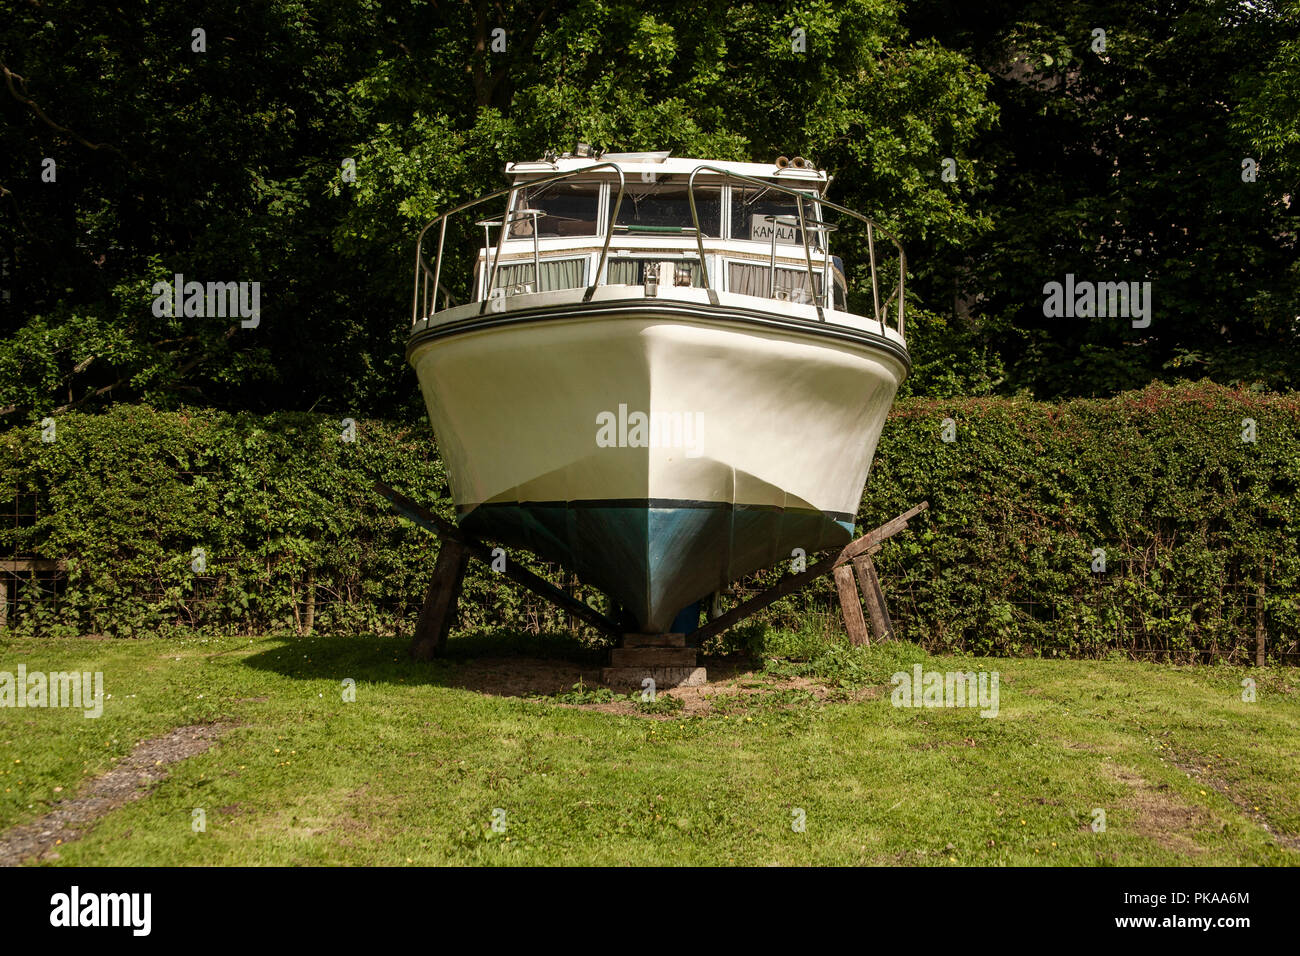 Front view of Cabin Cruiser mounted on supports out of water. Boat winterized boat winterized in dry dock - Stock Image